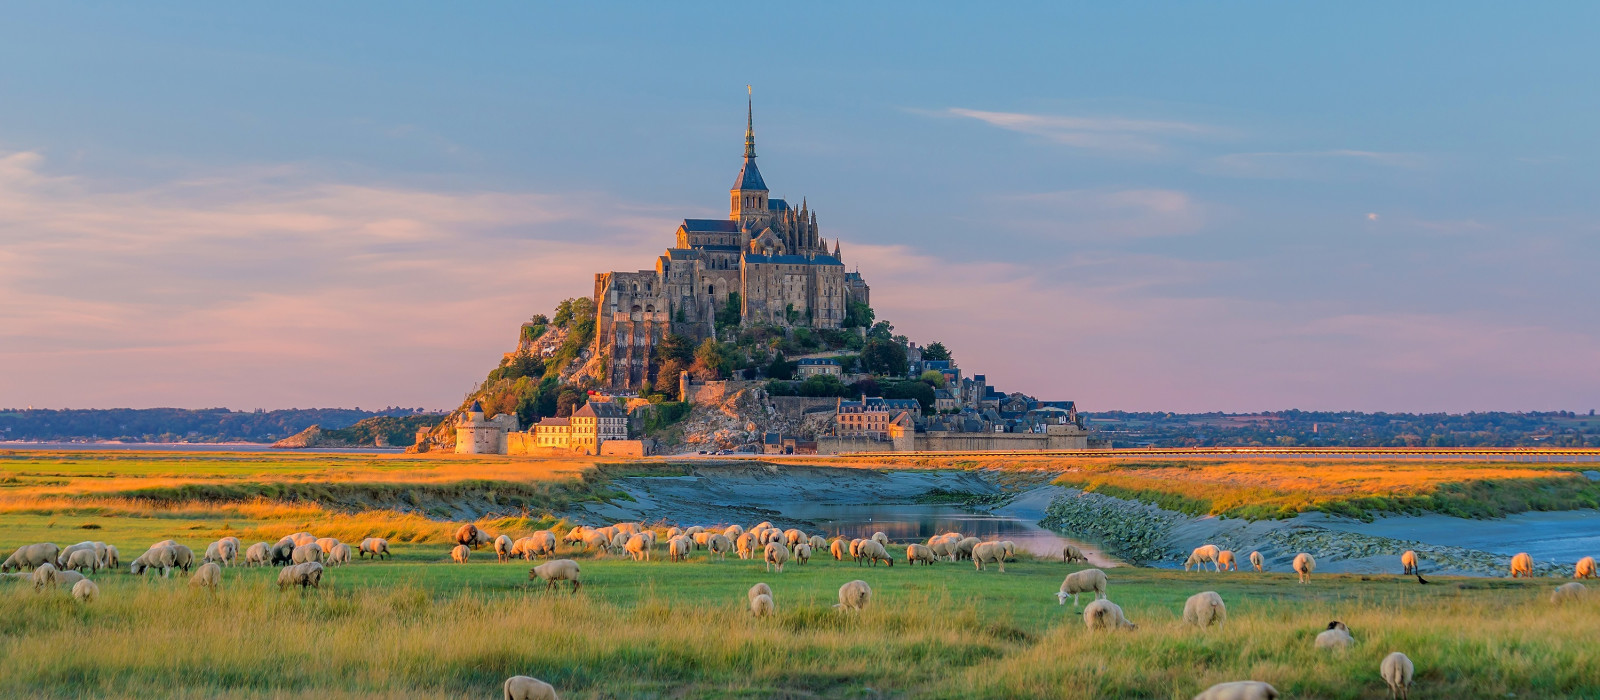 Destination Normandy Region France